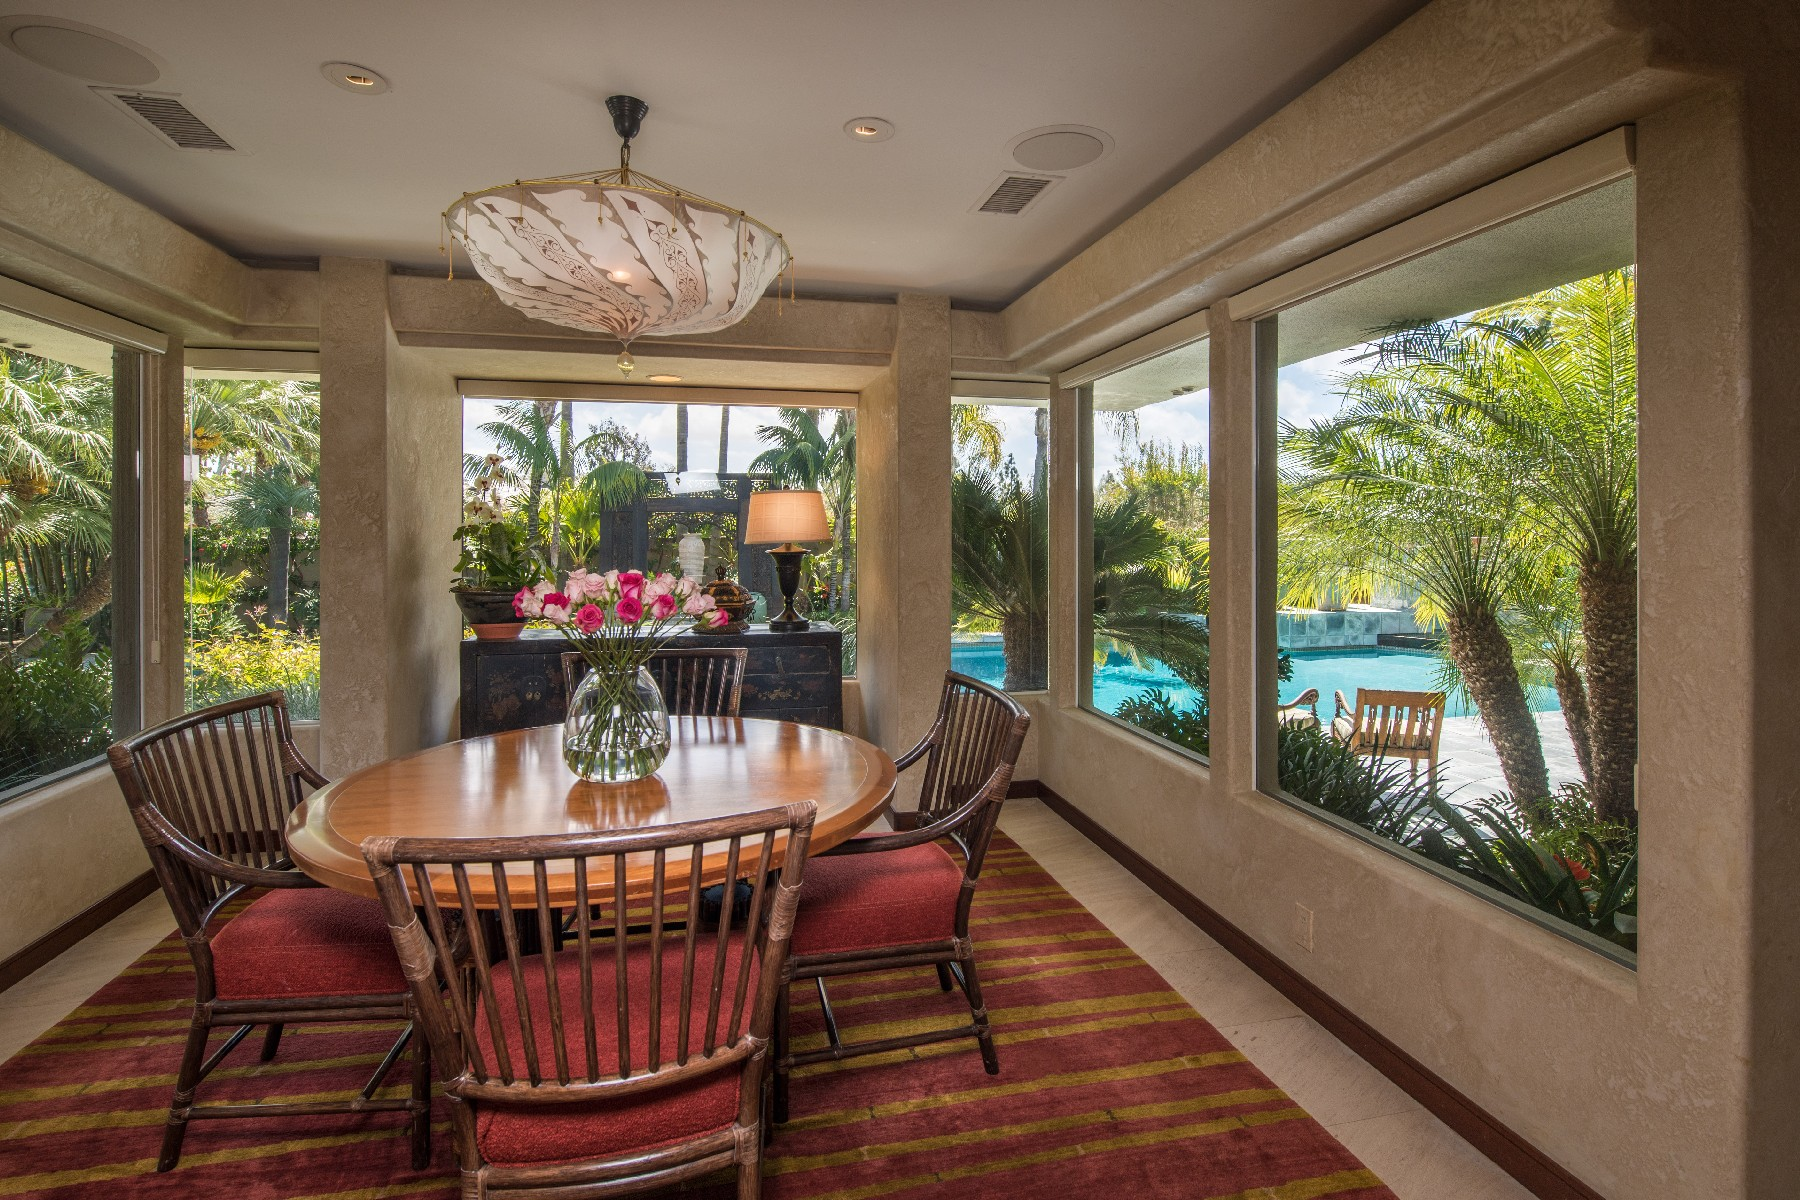 Additional photo for property listing at 5979 Rancho Diegueno  Rancho Santa Fe, Калифорния 92067 Соединенные Штаты